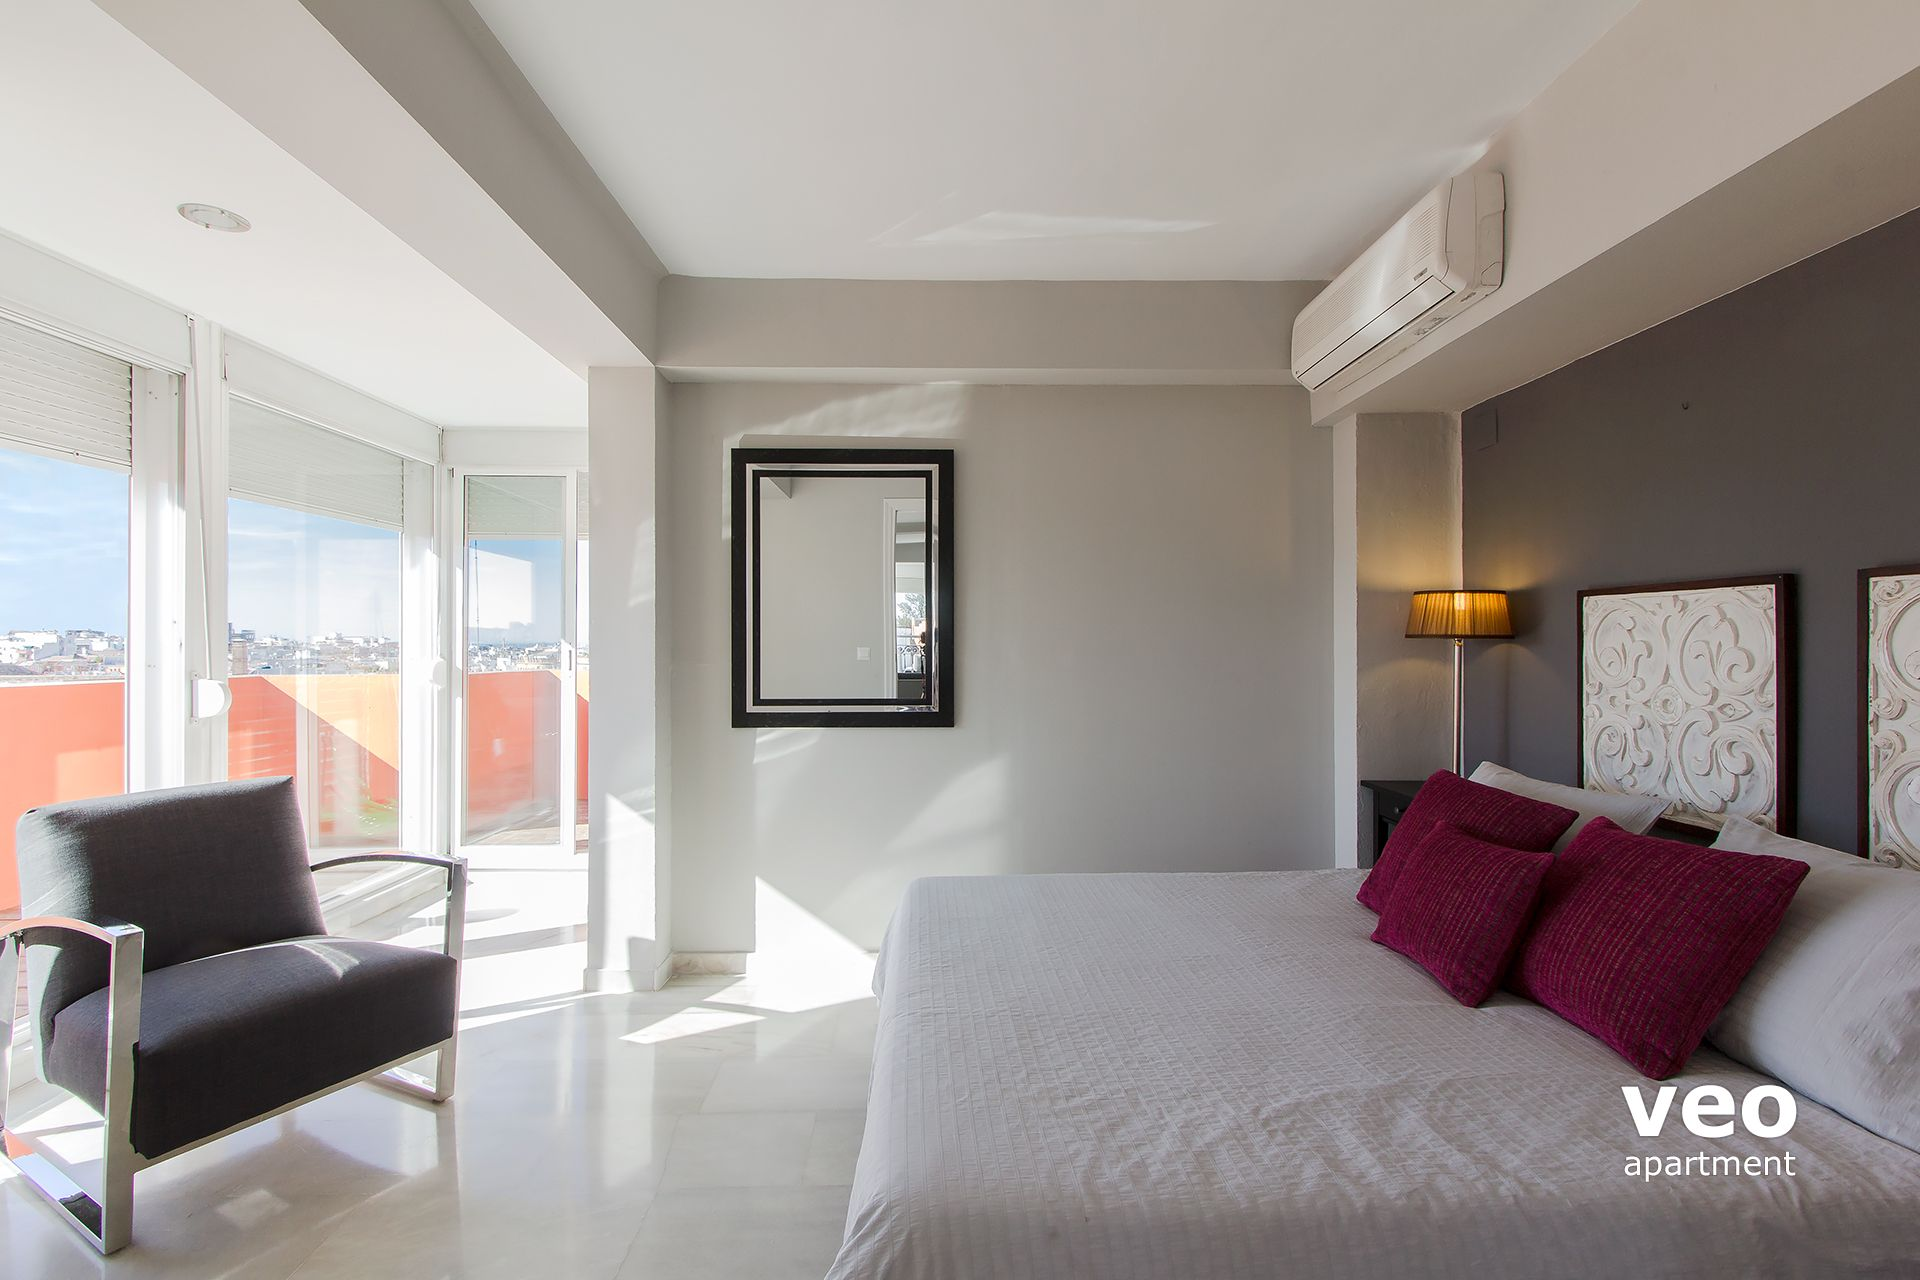 Seville Apartment   Master Bedroom With Double Bed, Wardrobe And En Suite  Bathroom.